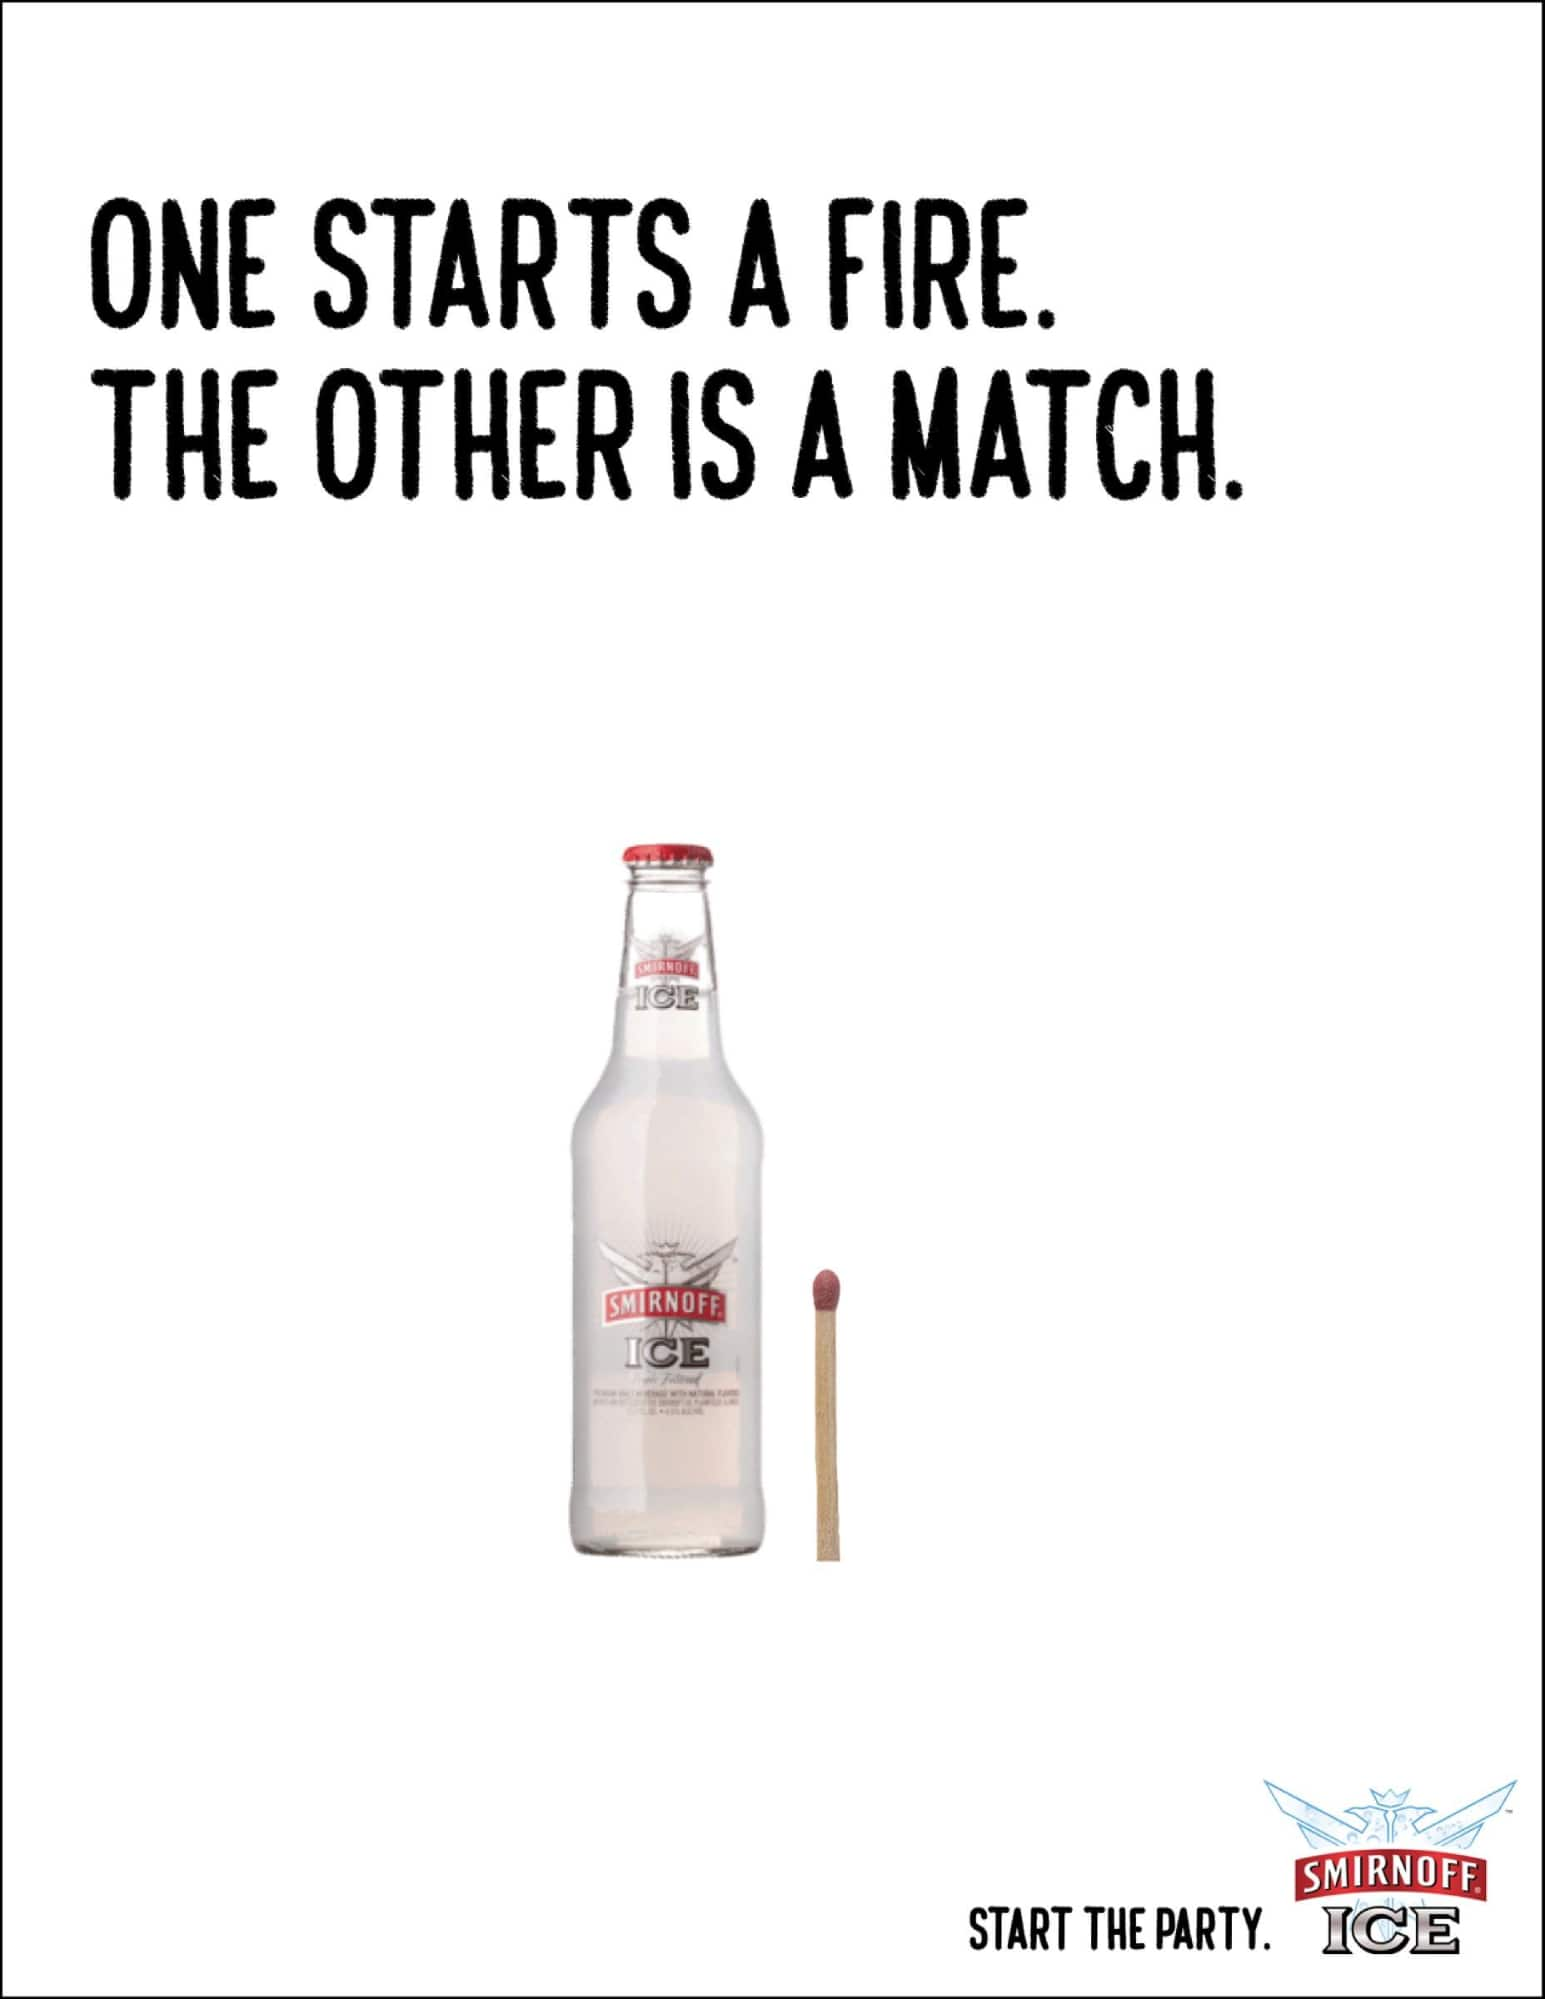 smirnoff ice print advertisement example